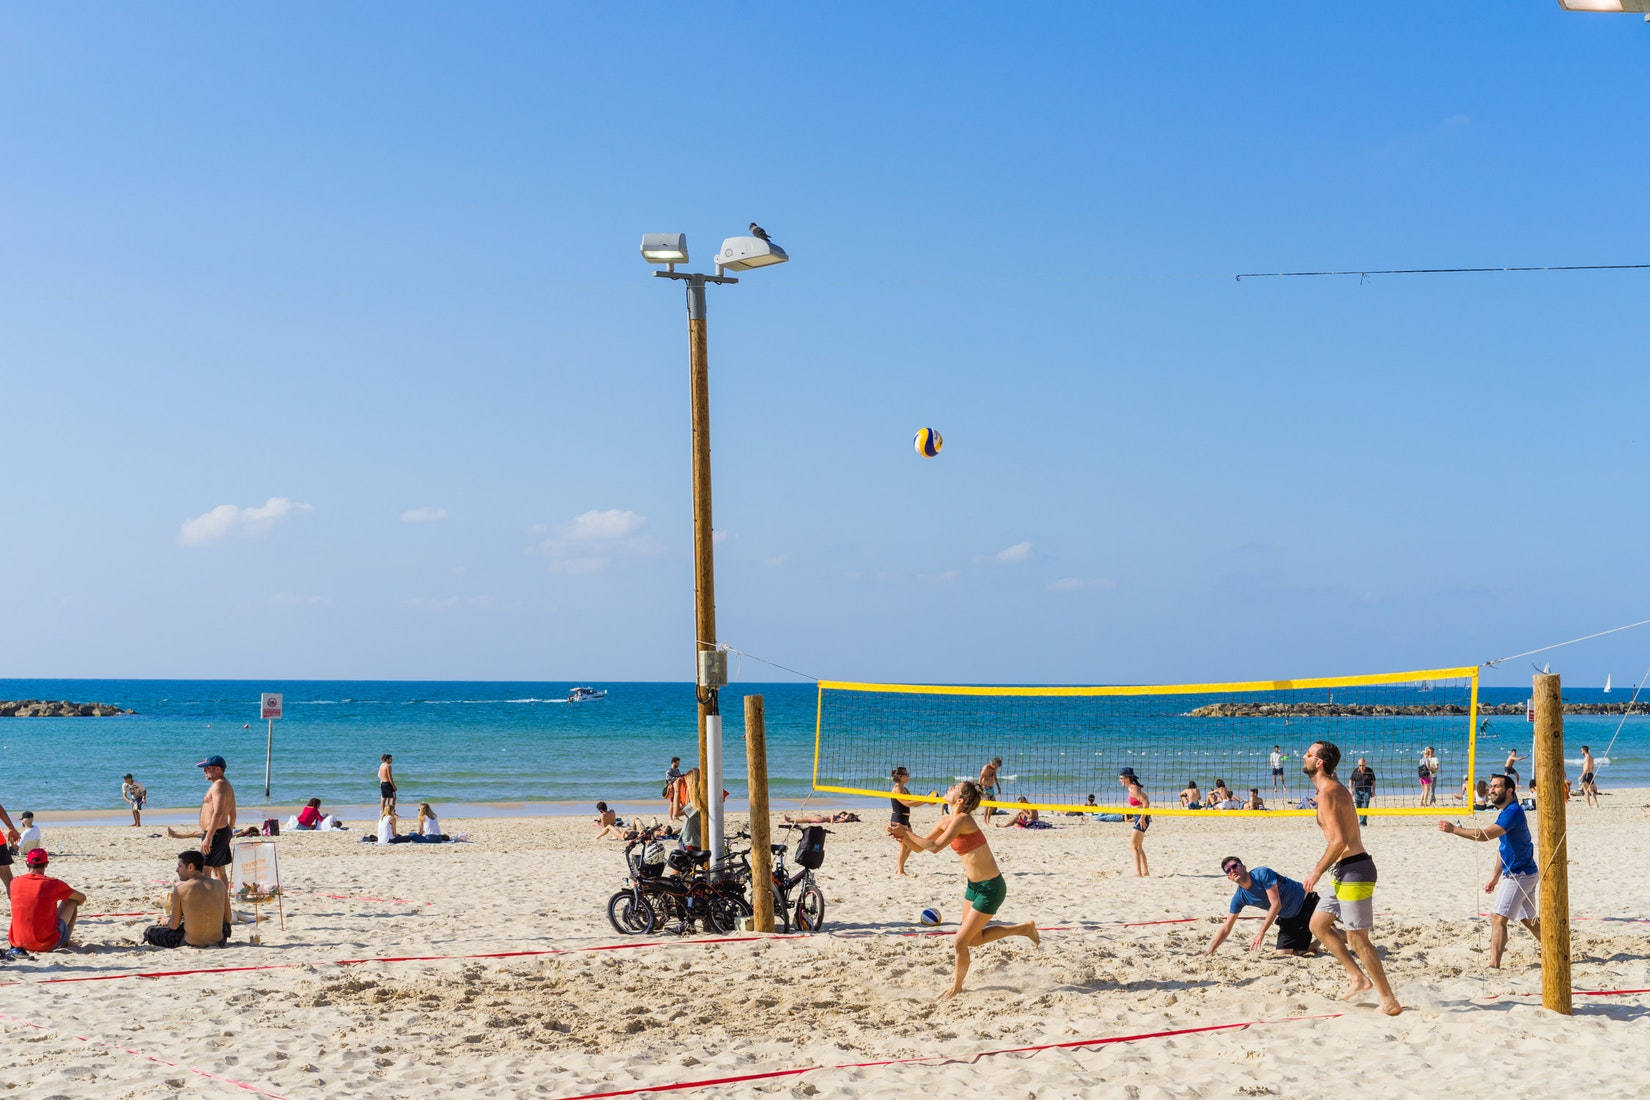 People playing beach volleyball in Tel Aviv, Israel